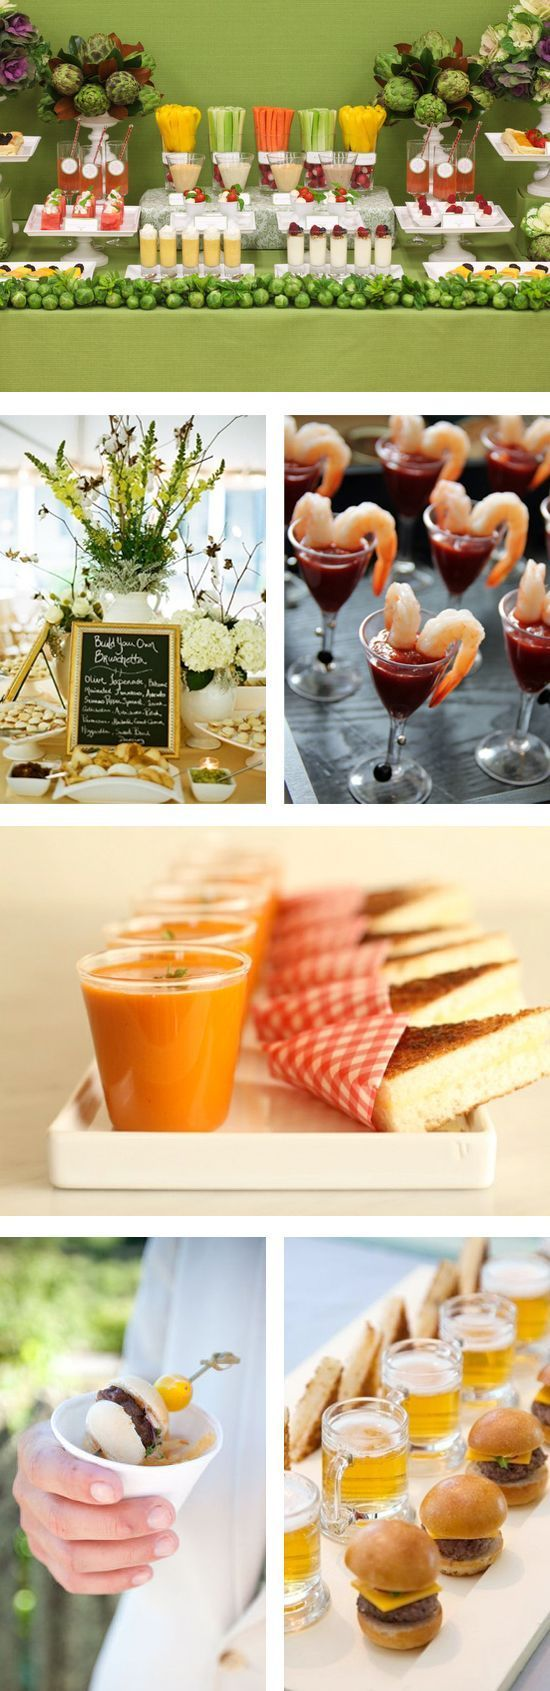 Banquet food ideas images galleries for Best food for wedding reception